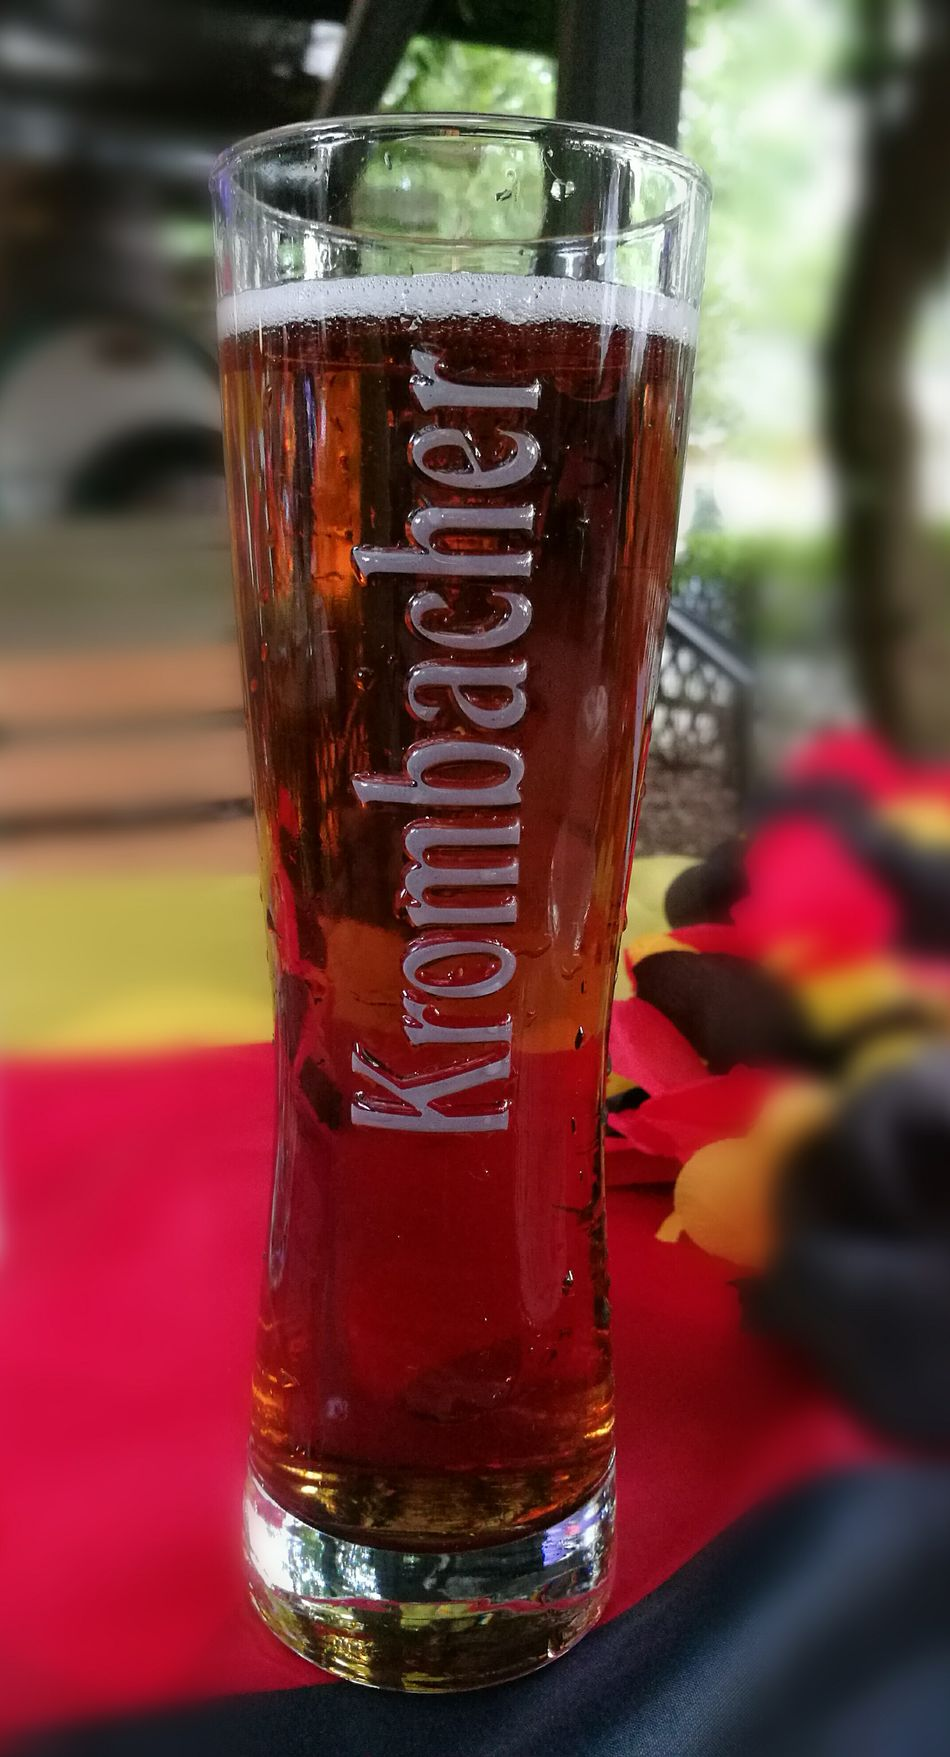 Drink Time Glass Krombacher German Party Time Black Red Gold Berlin Restaurant Beer Garden Beer Glass The Innovator